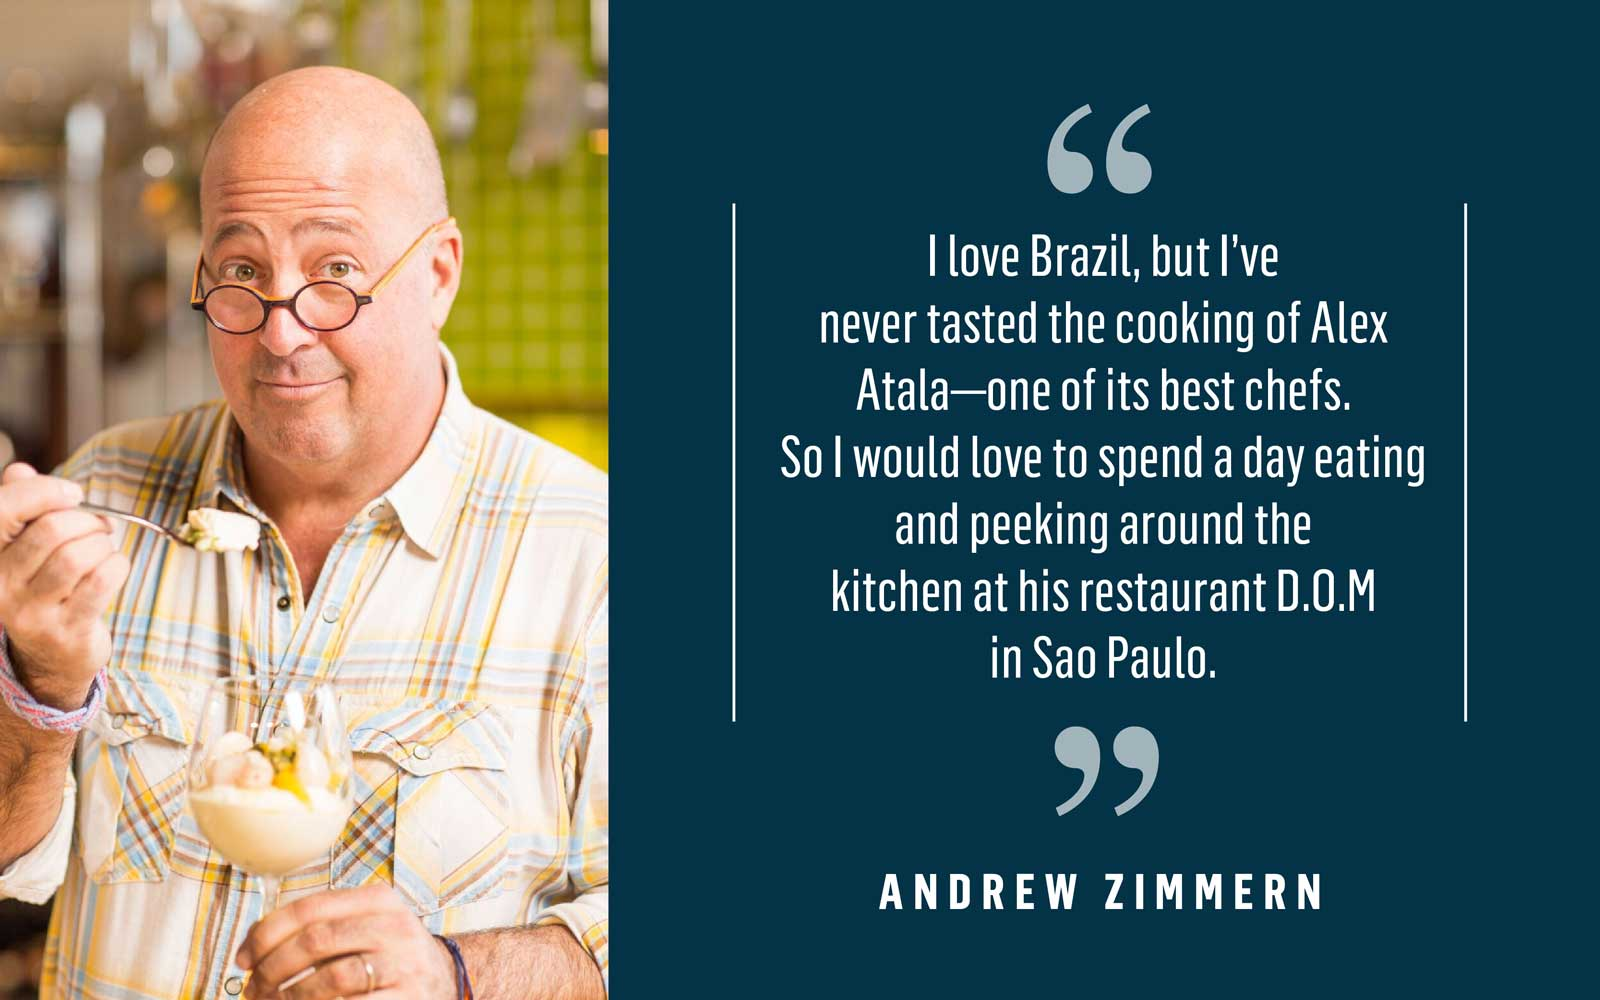 Food personality Andrew Zimmern